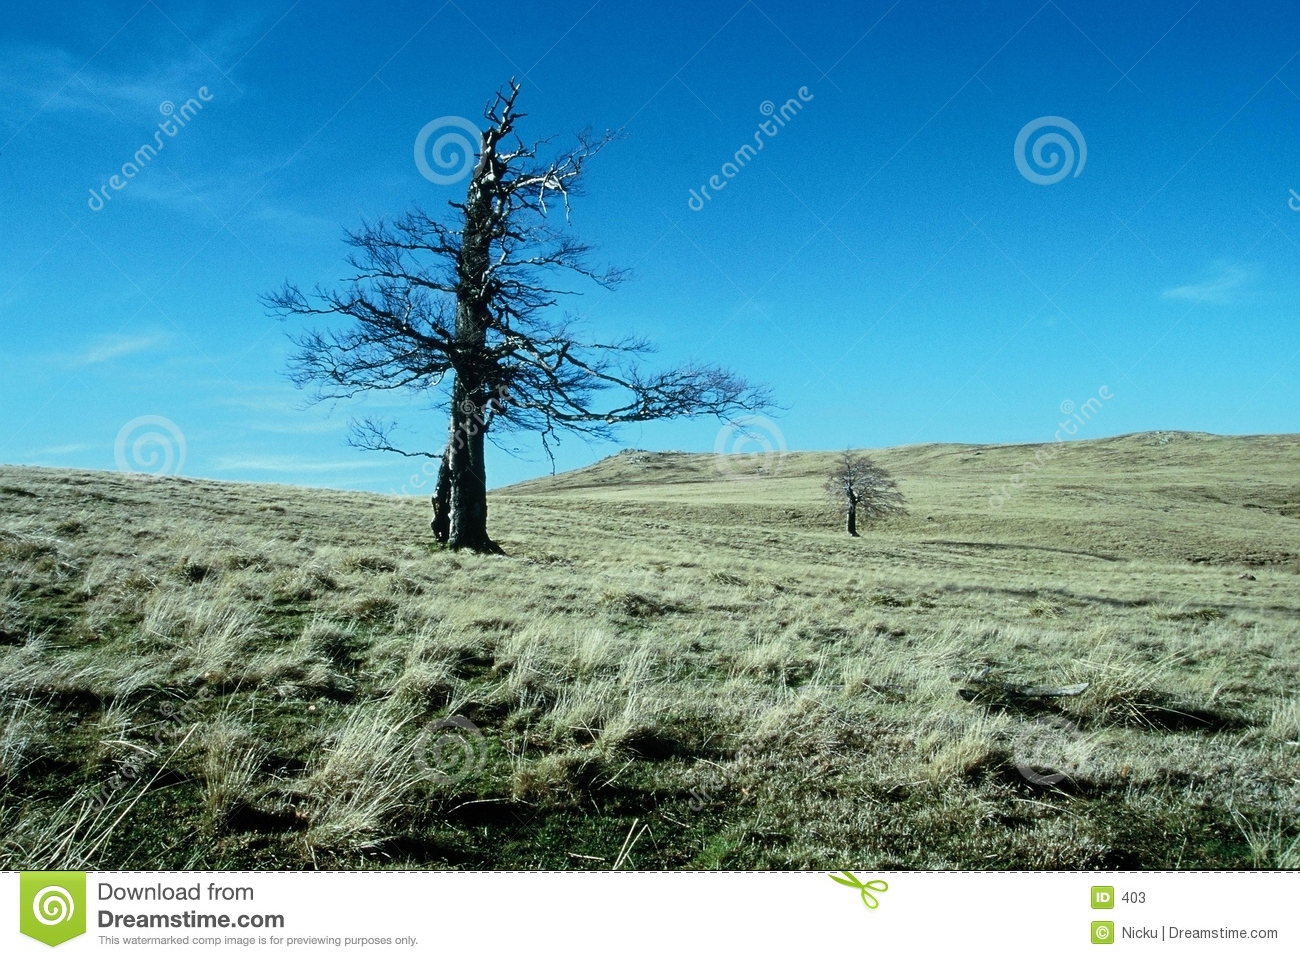 Remote tree on mountain field